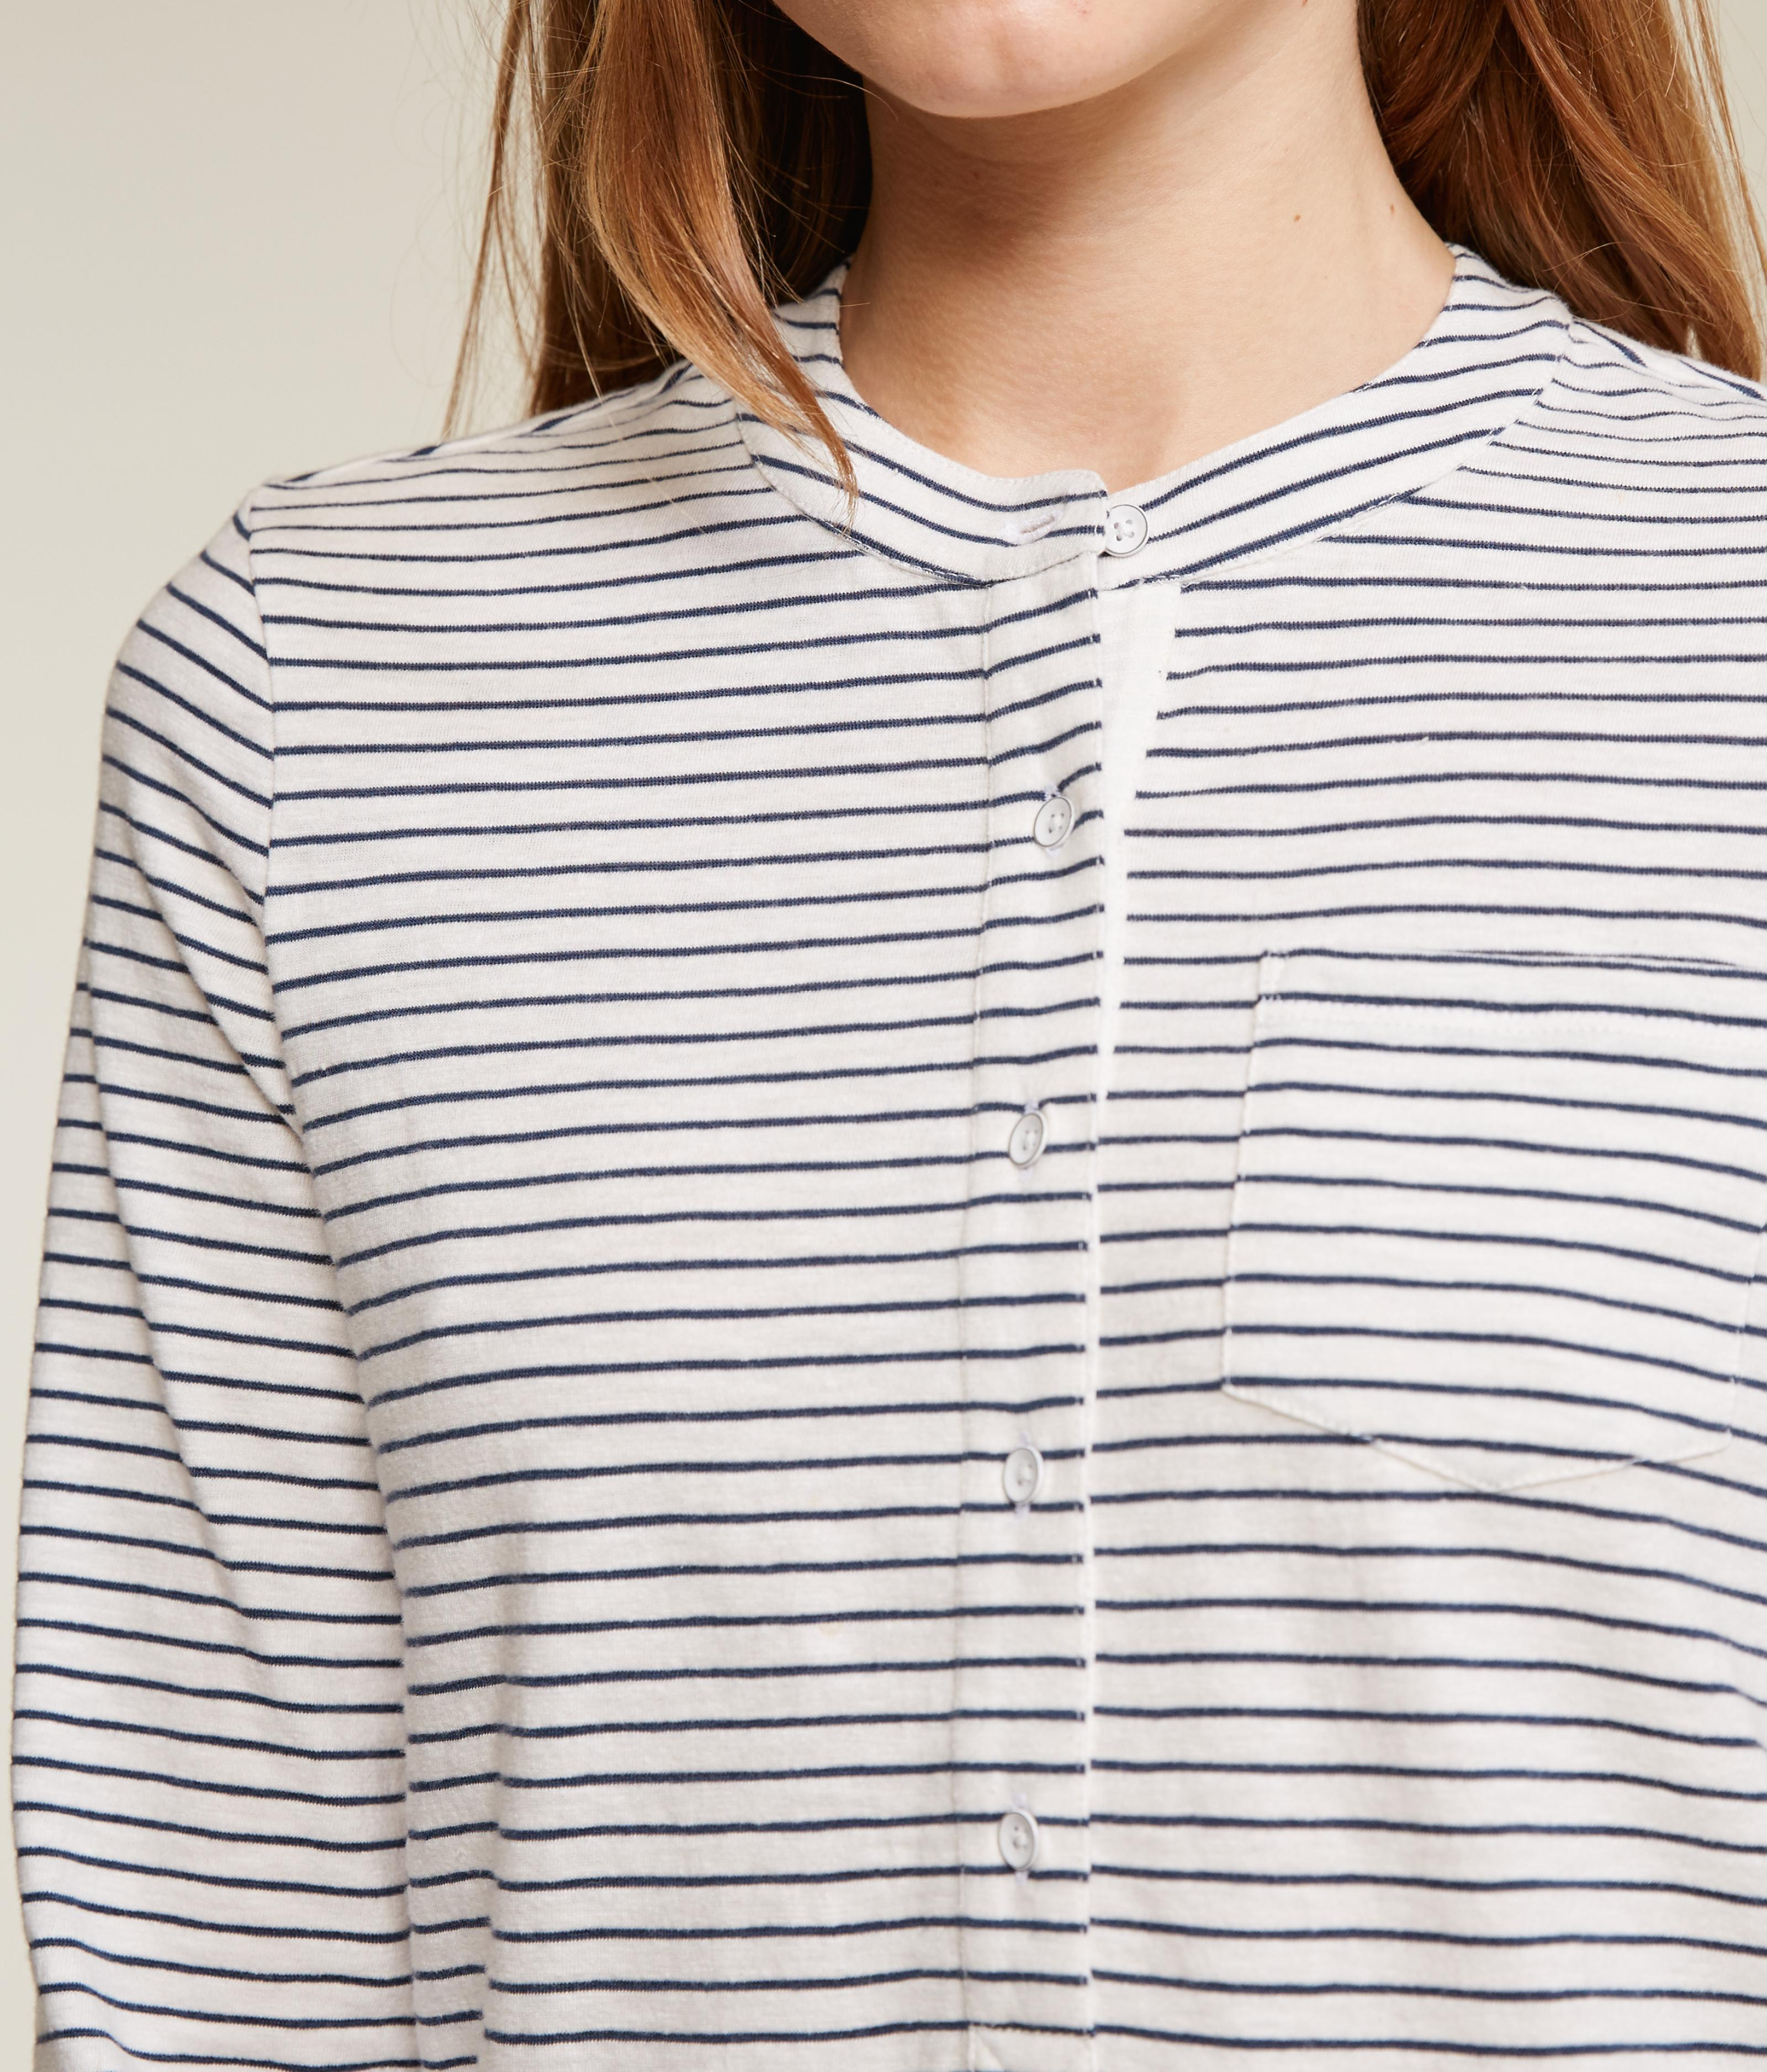 Close up of a white and black fine striped top.